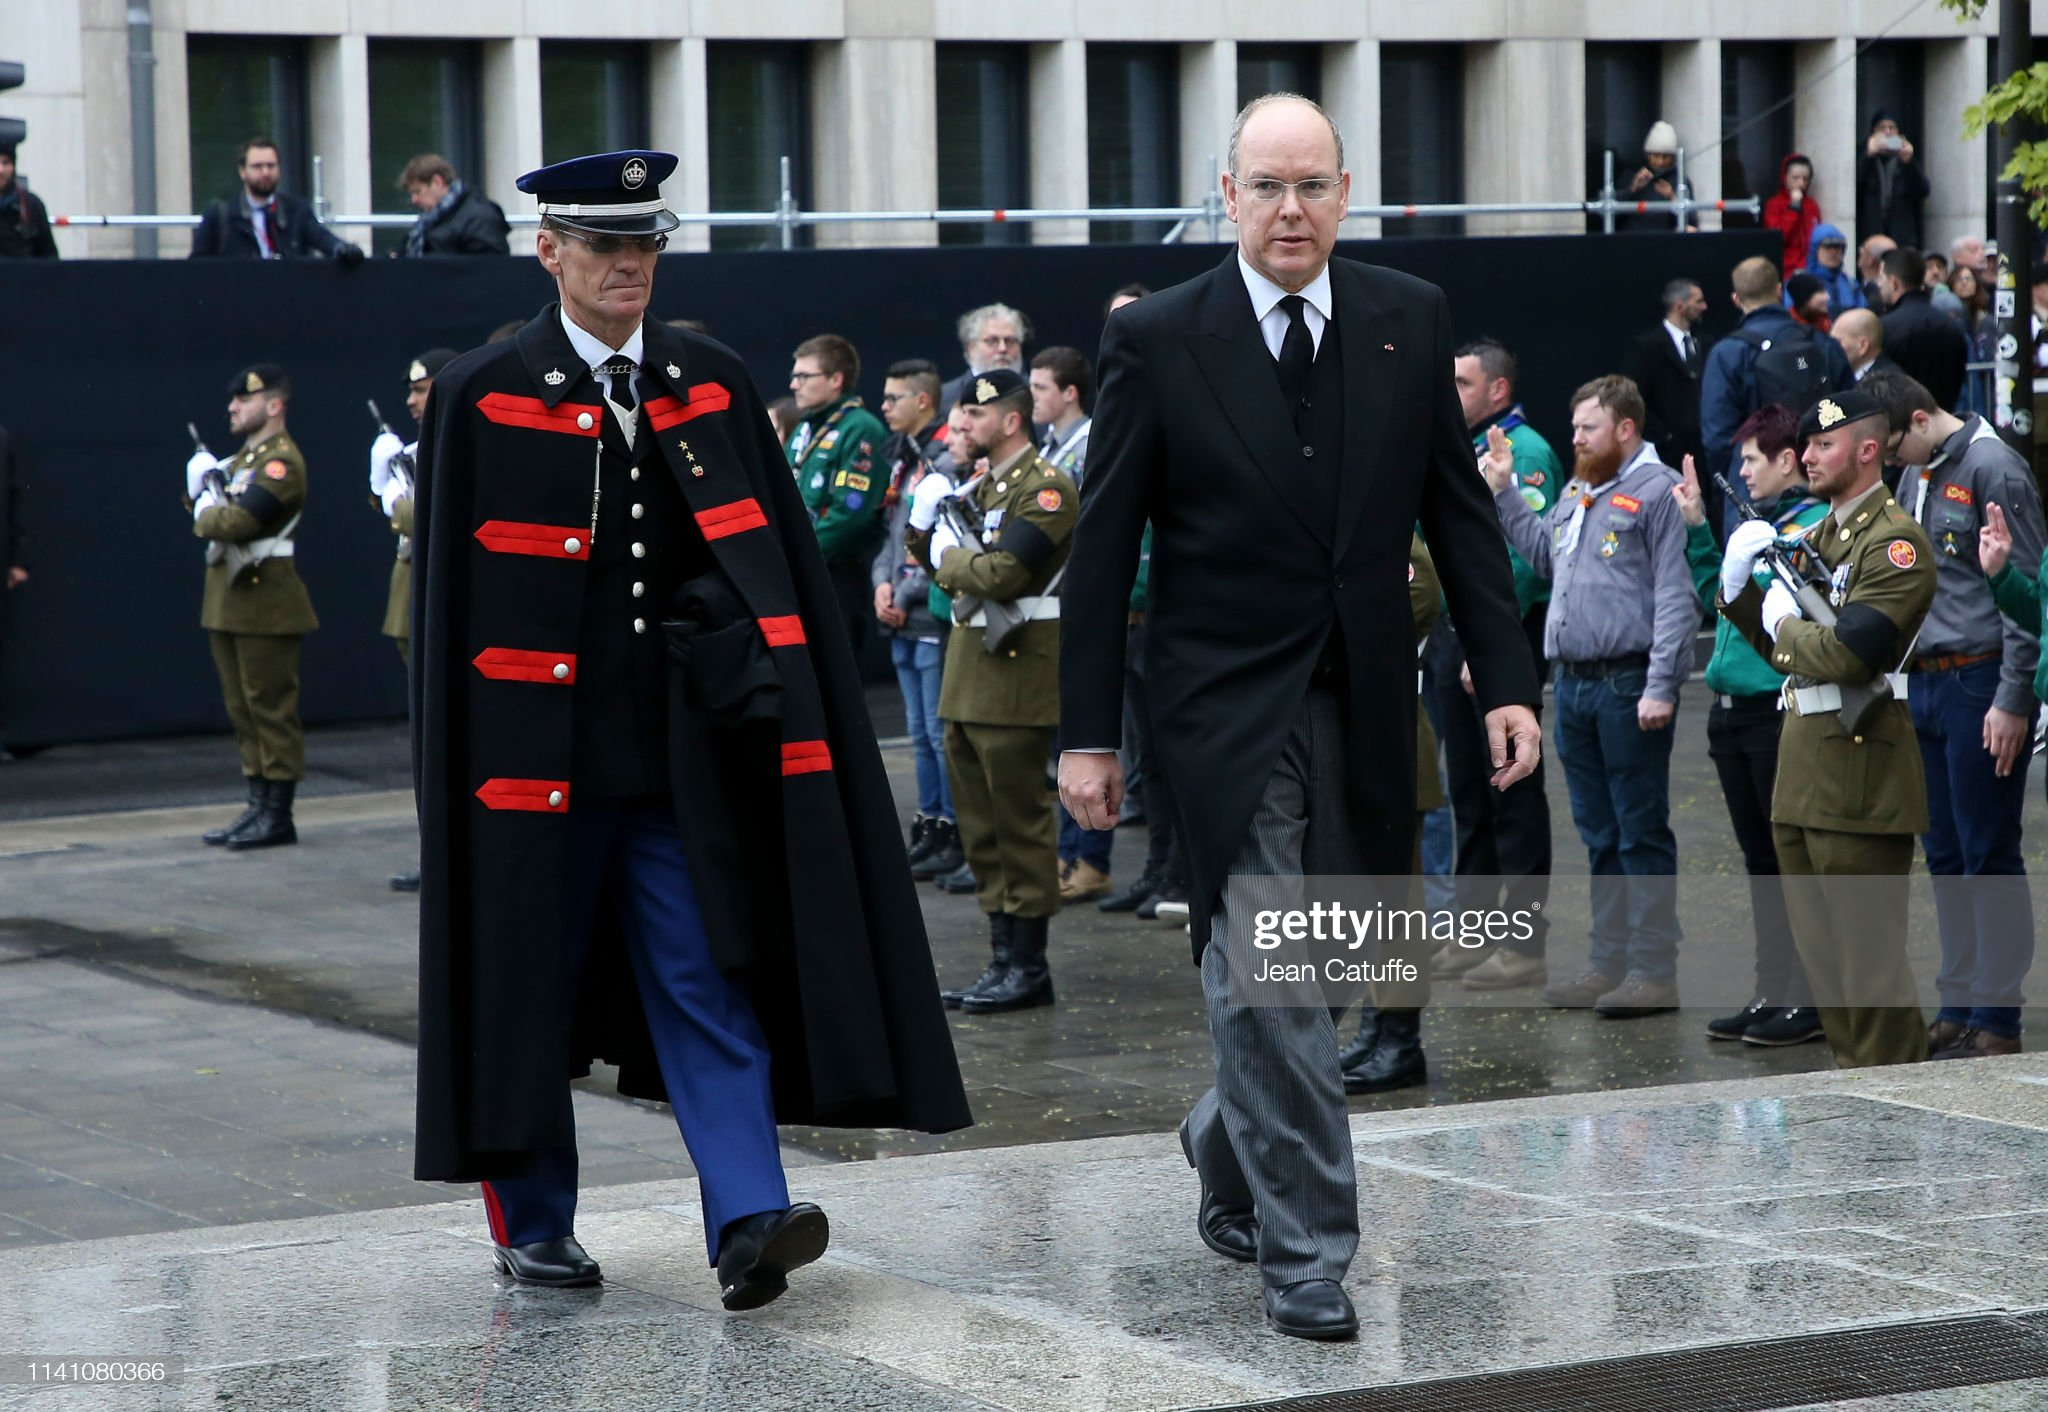 Похороны Великого Герцога Жана https://media.gettyimages.com/photos/prince-albert-ii-of-monaco-arrives-for-the-funeral-of-grand-duke-jean-picture-id1141080366?s=2048x2048